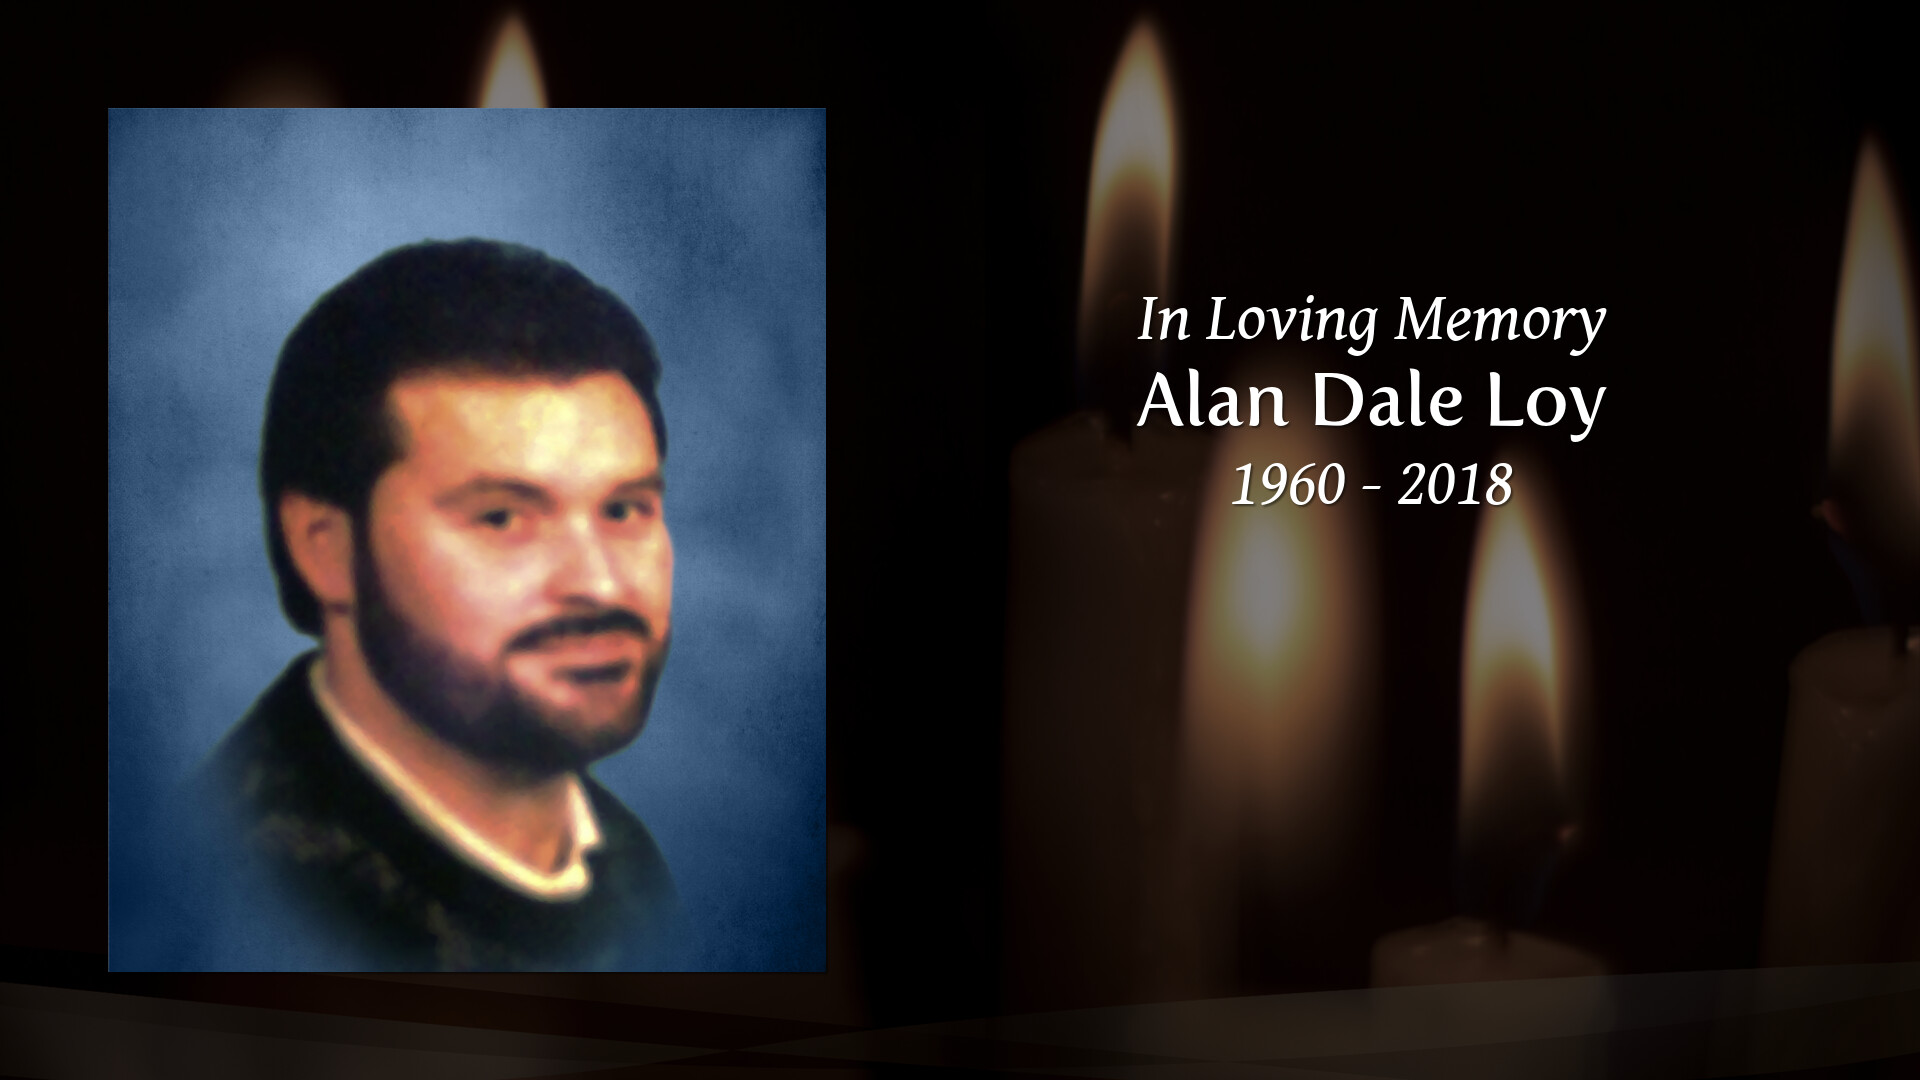 Obituary for Alan Dale Loy | Max Brannon and Sons Funeral Home